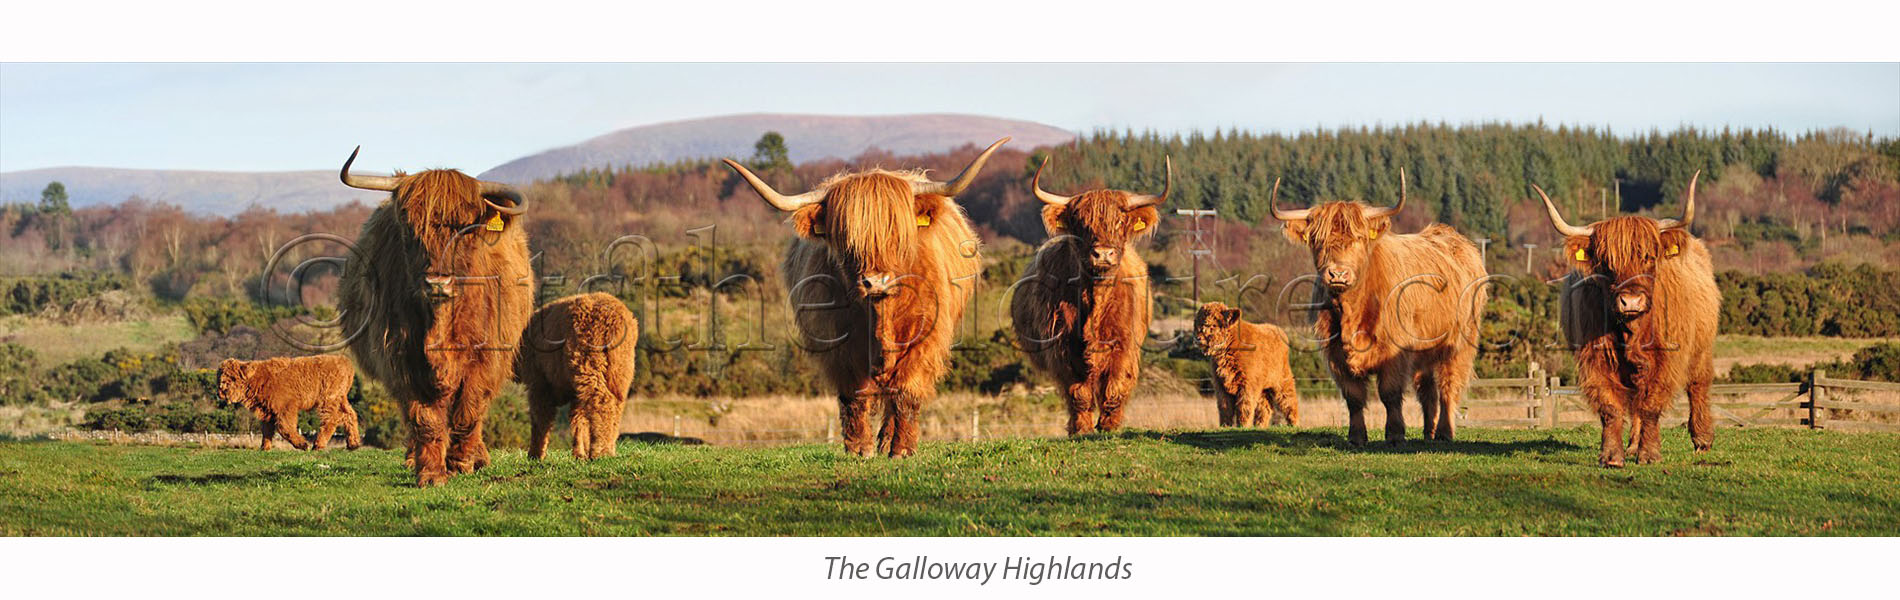 the_galloway_highlands.jpg